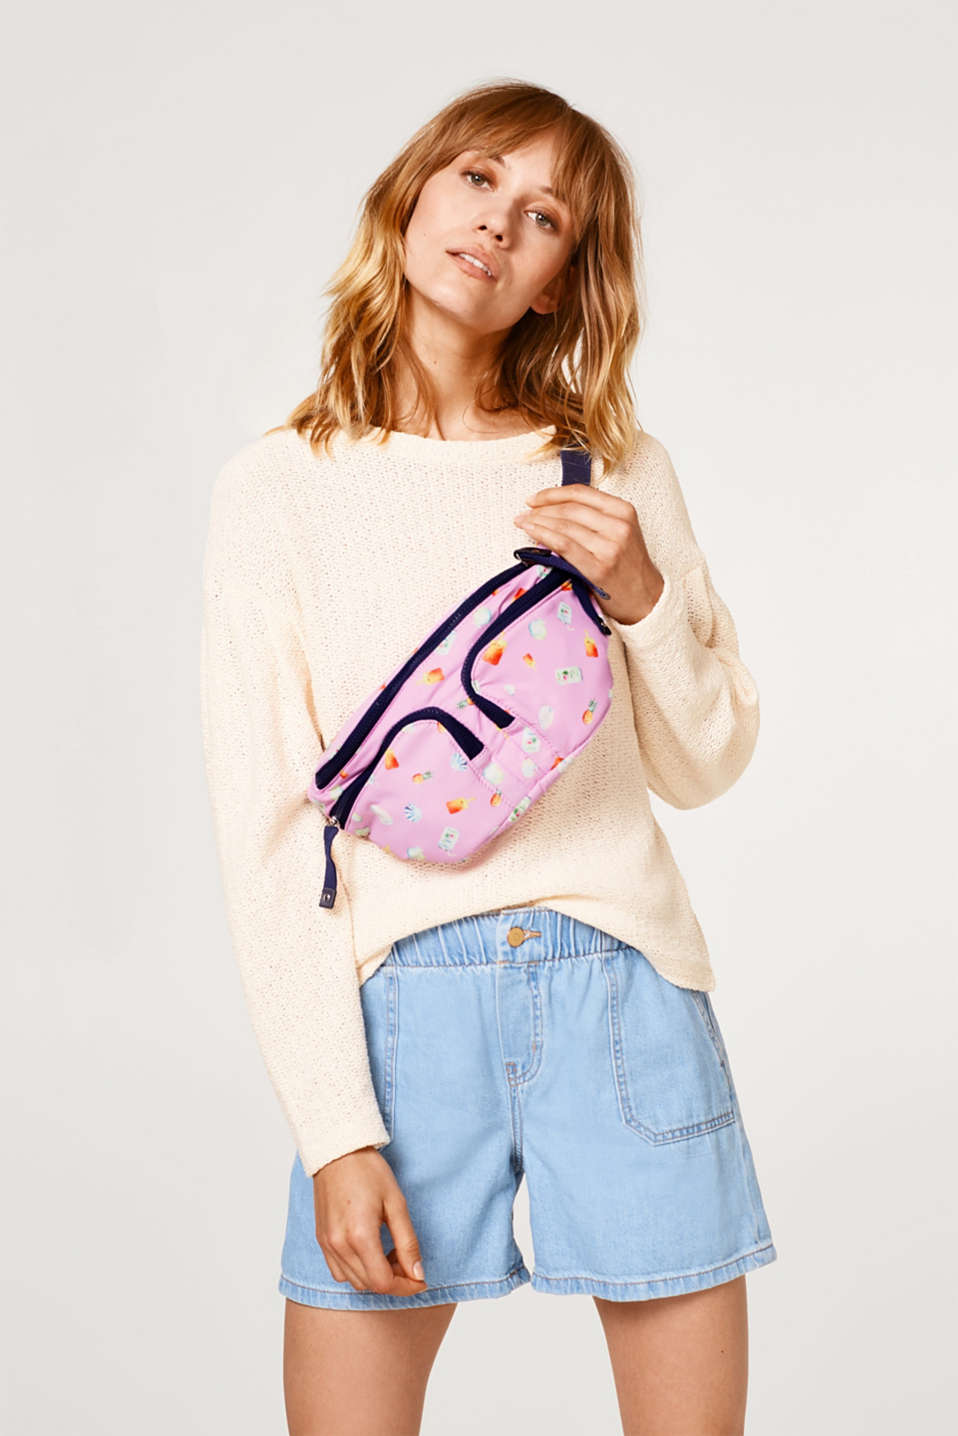 Hip pack with a summery print